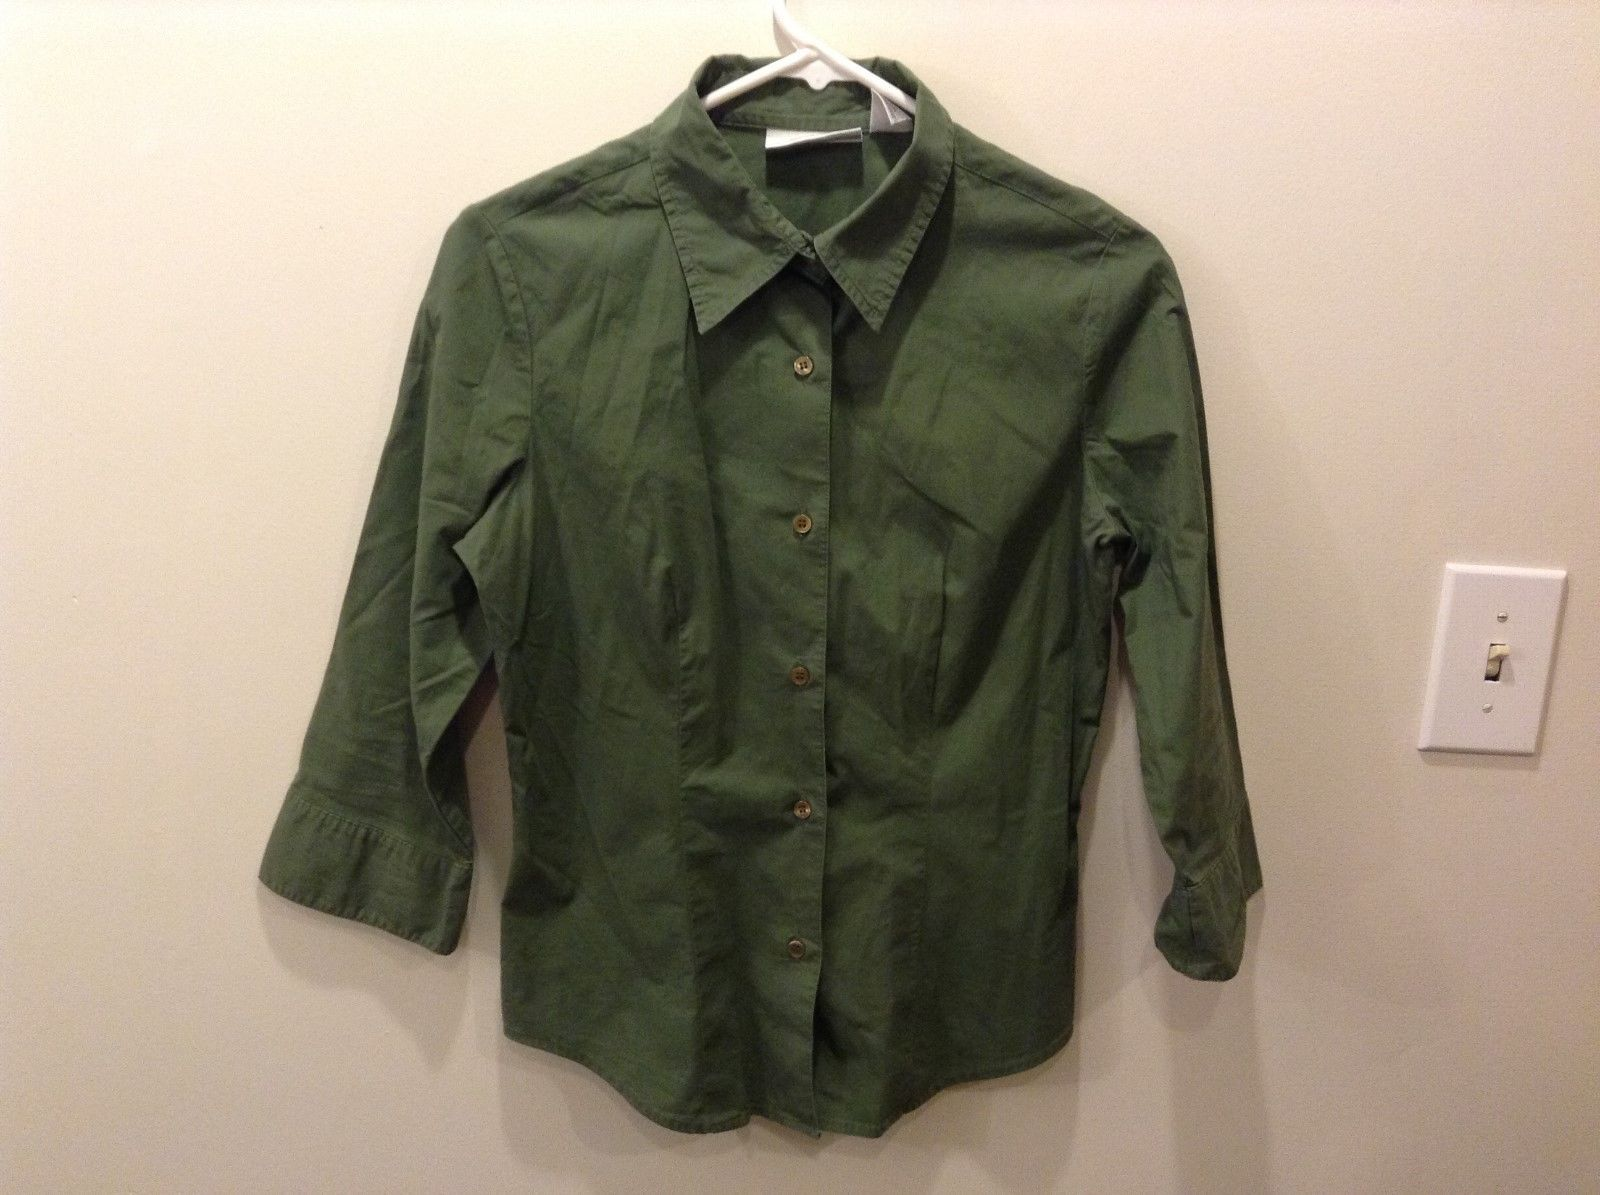 Women's Chadwick's Green 3/4 Sleeve Button Up Shirt Size Small